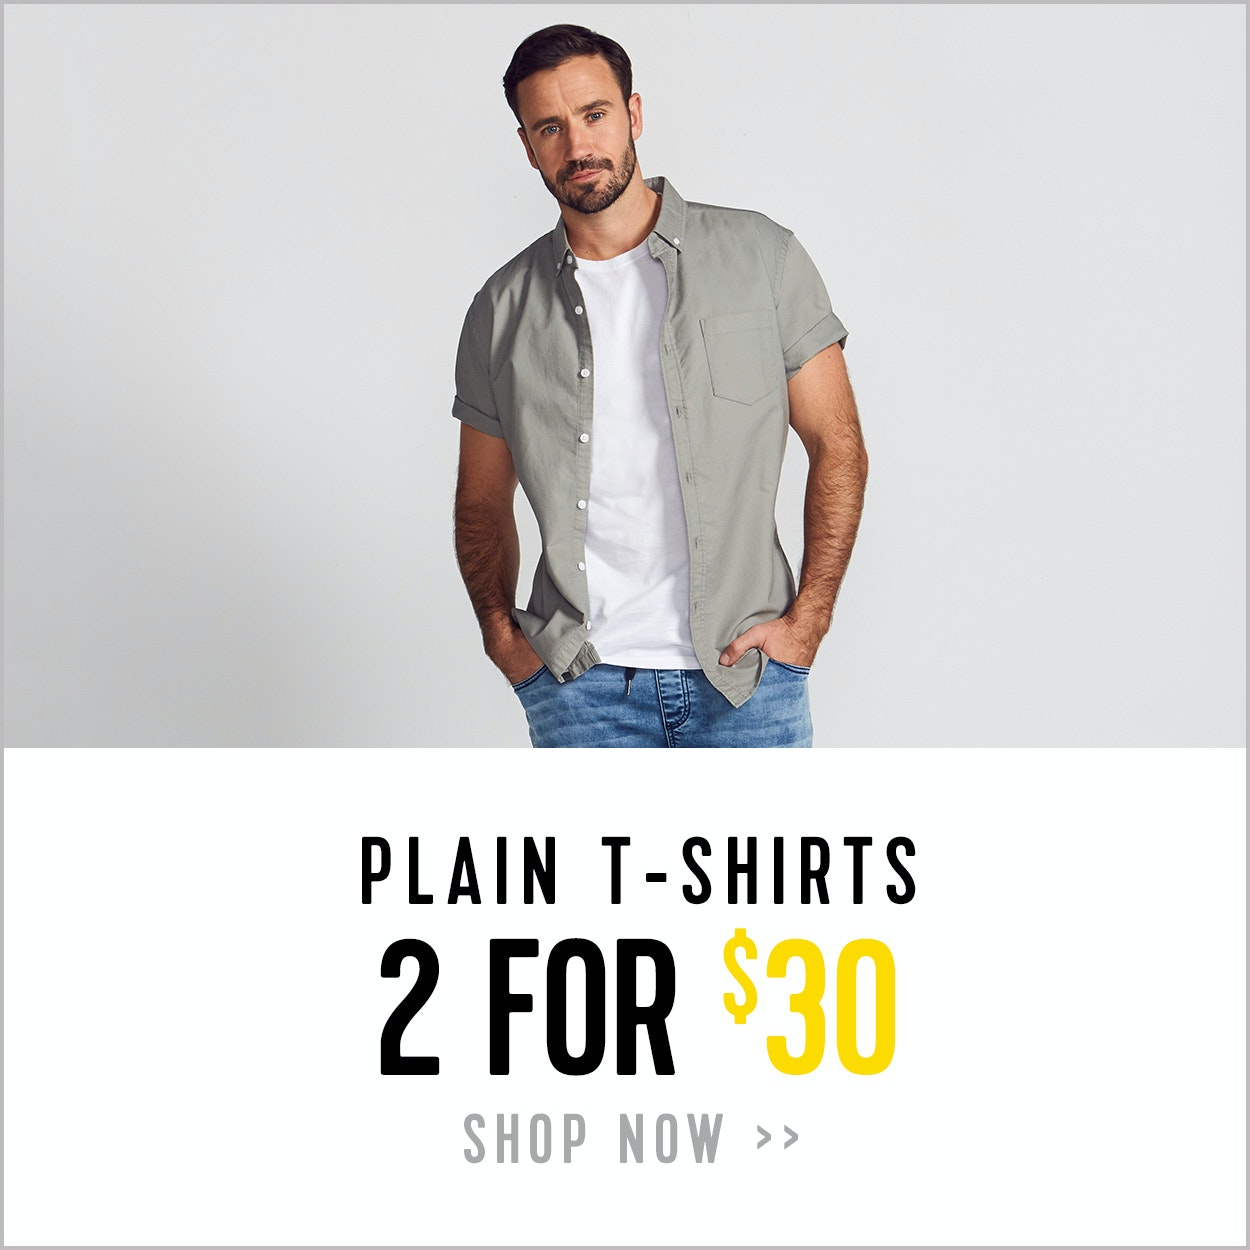 Plain T-shirts - 2 for $30